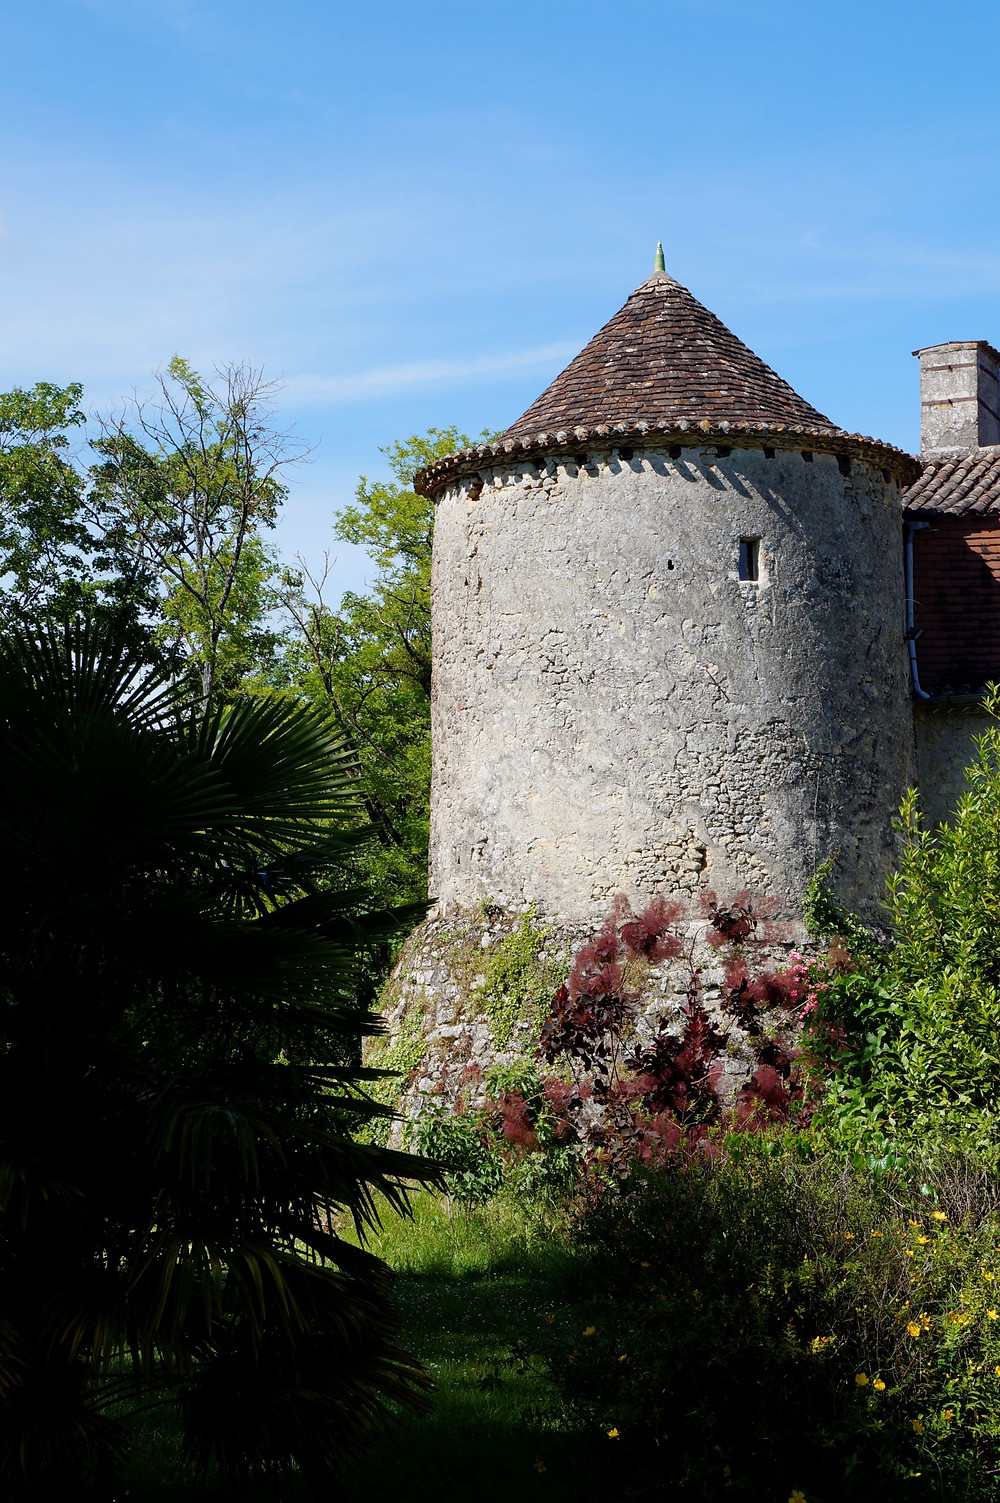 This 13th century turret is part of a working chateau